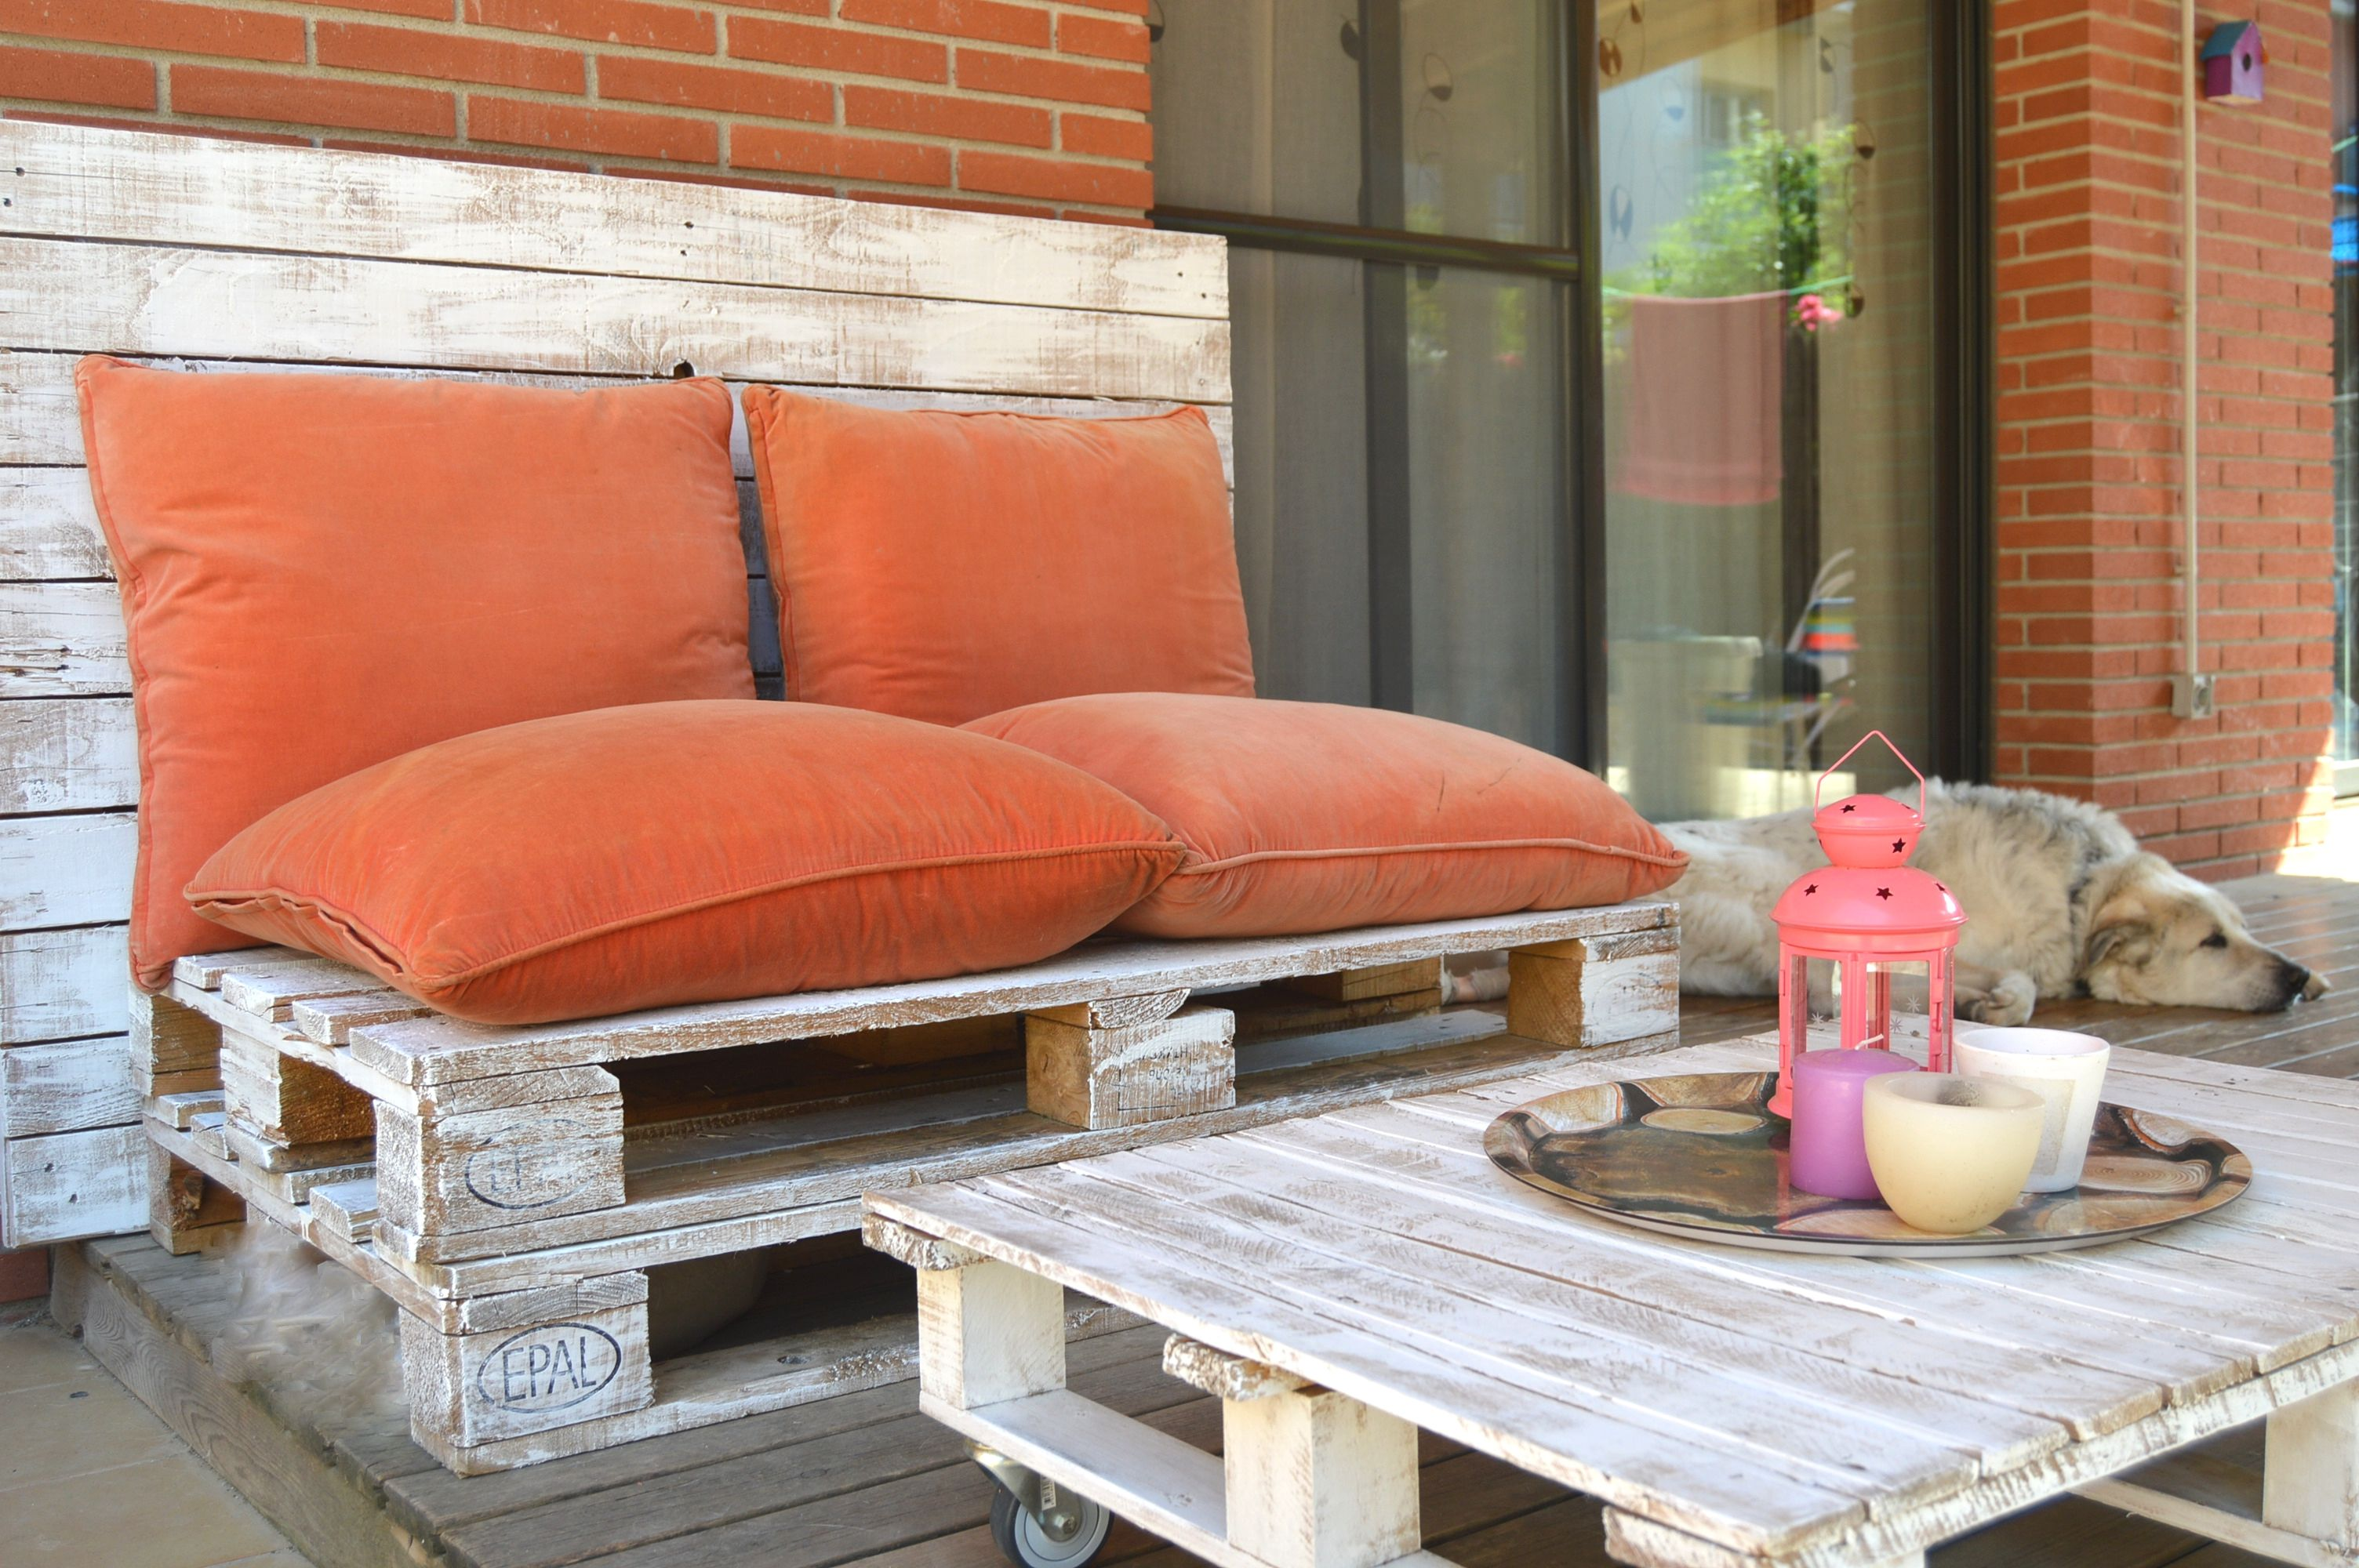 asiento diy con palets para la terraza with sofa chill out con palets with terraza chill - Chill Out Con Palets